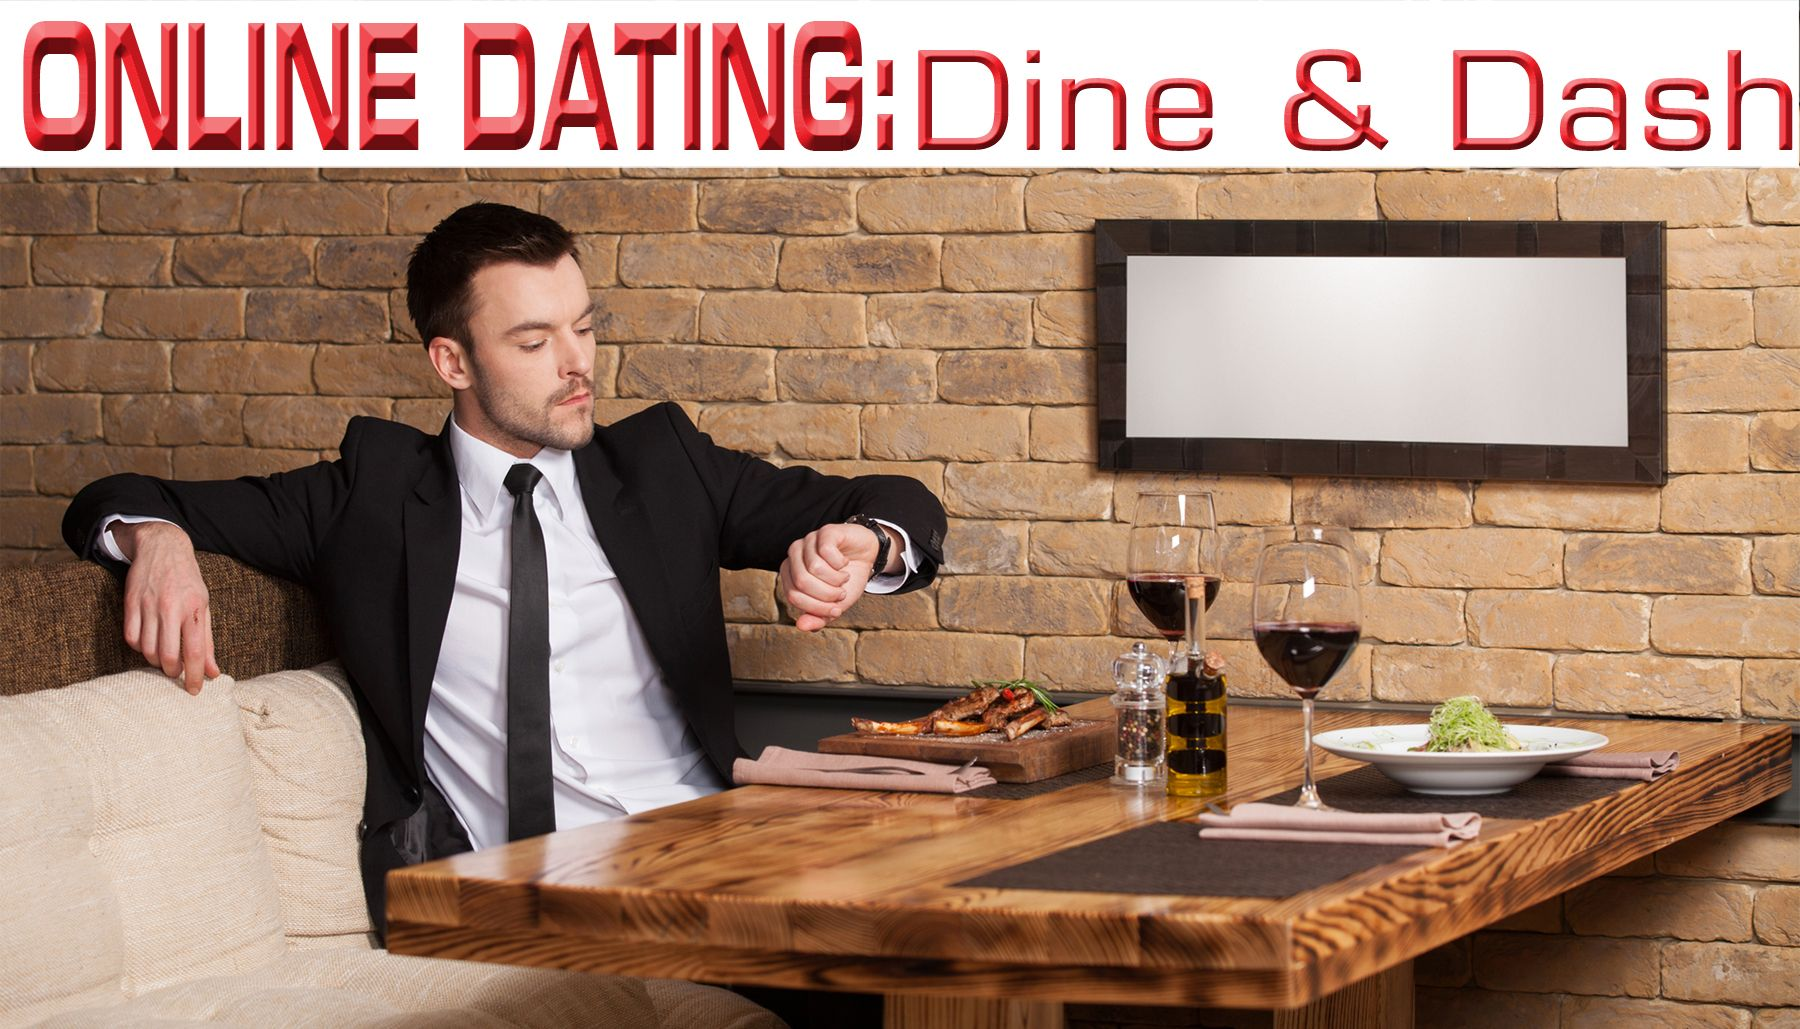 Dating dine and dash